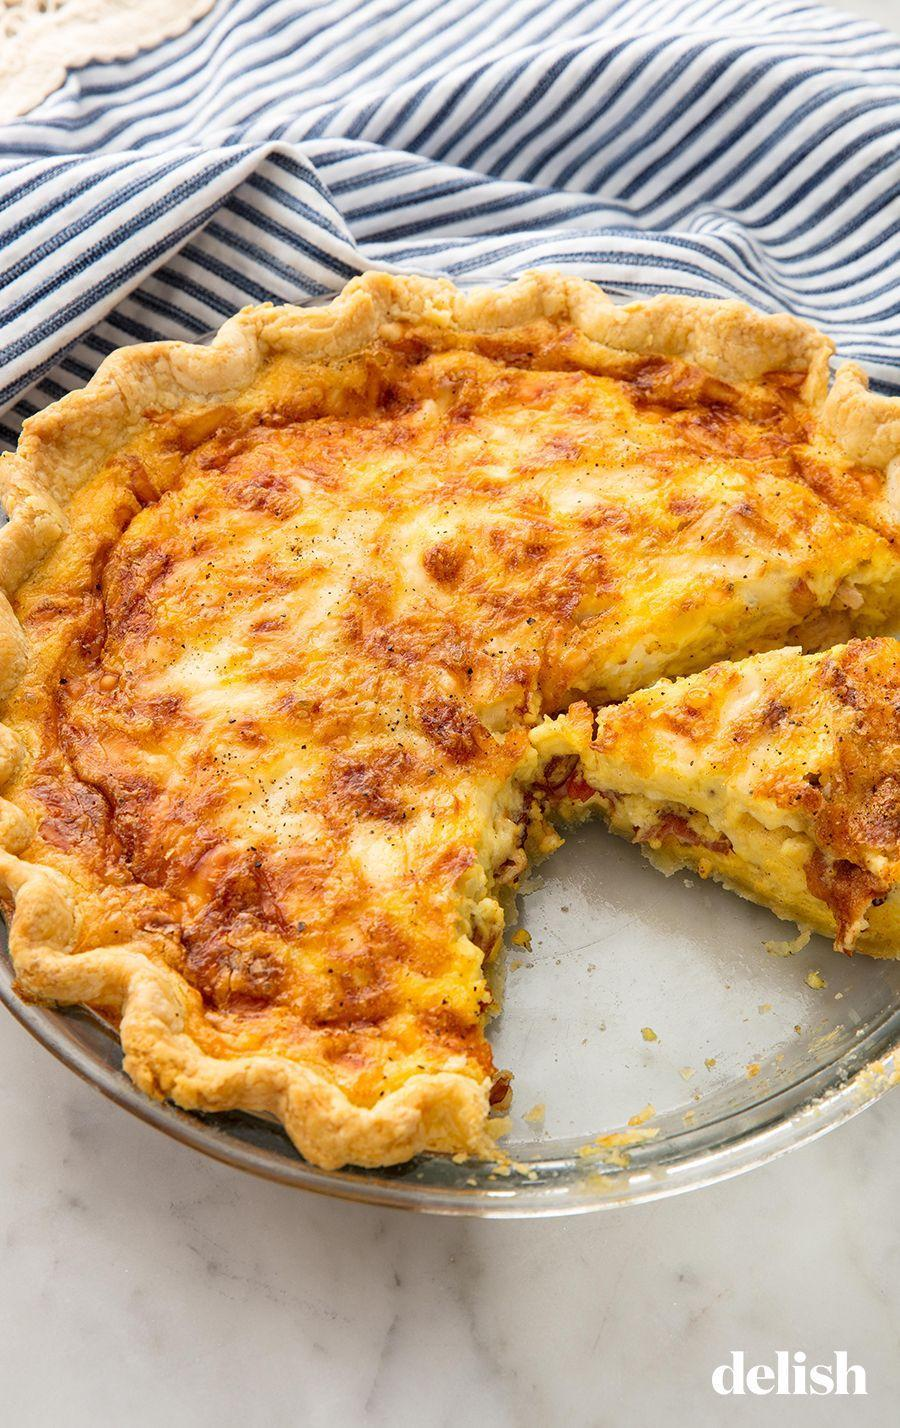 """<p>Master this quiche and leave the brunch crowds in the dust.</p><p>Get the recipe from <a href=""""https://www.delish.com/cooking/recipe-ideas/recipes/a58388/easy-quiche-lorraine-recipe/"""" rel=""""nofollow noopener"""" target=""""_blank"""" data-ylk=""""slk:Delish"""" class=""""link rapid-noclick-resp"""">Delish</a>. </p>"""